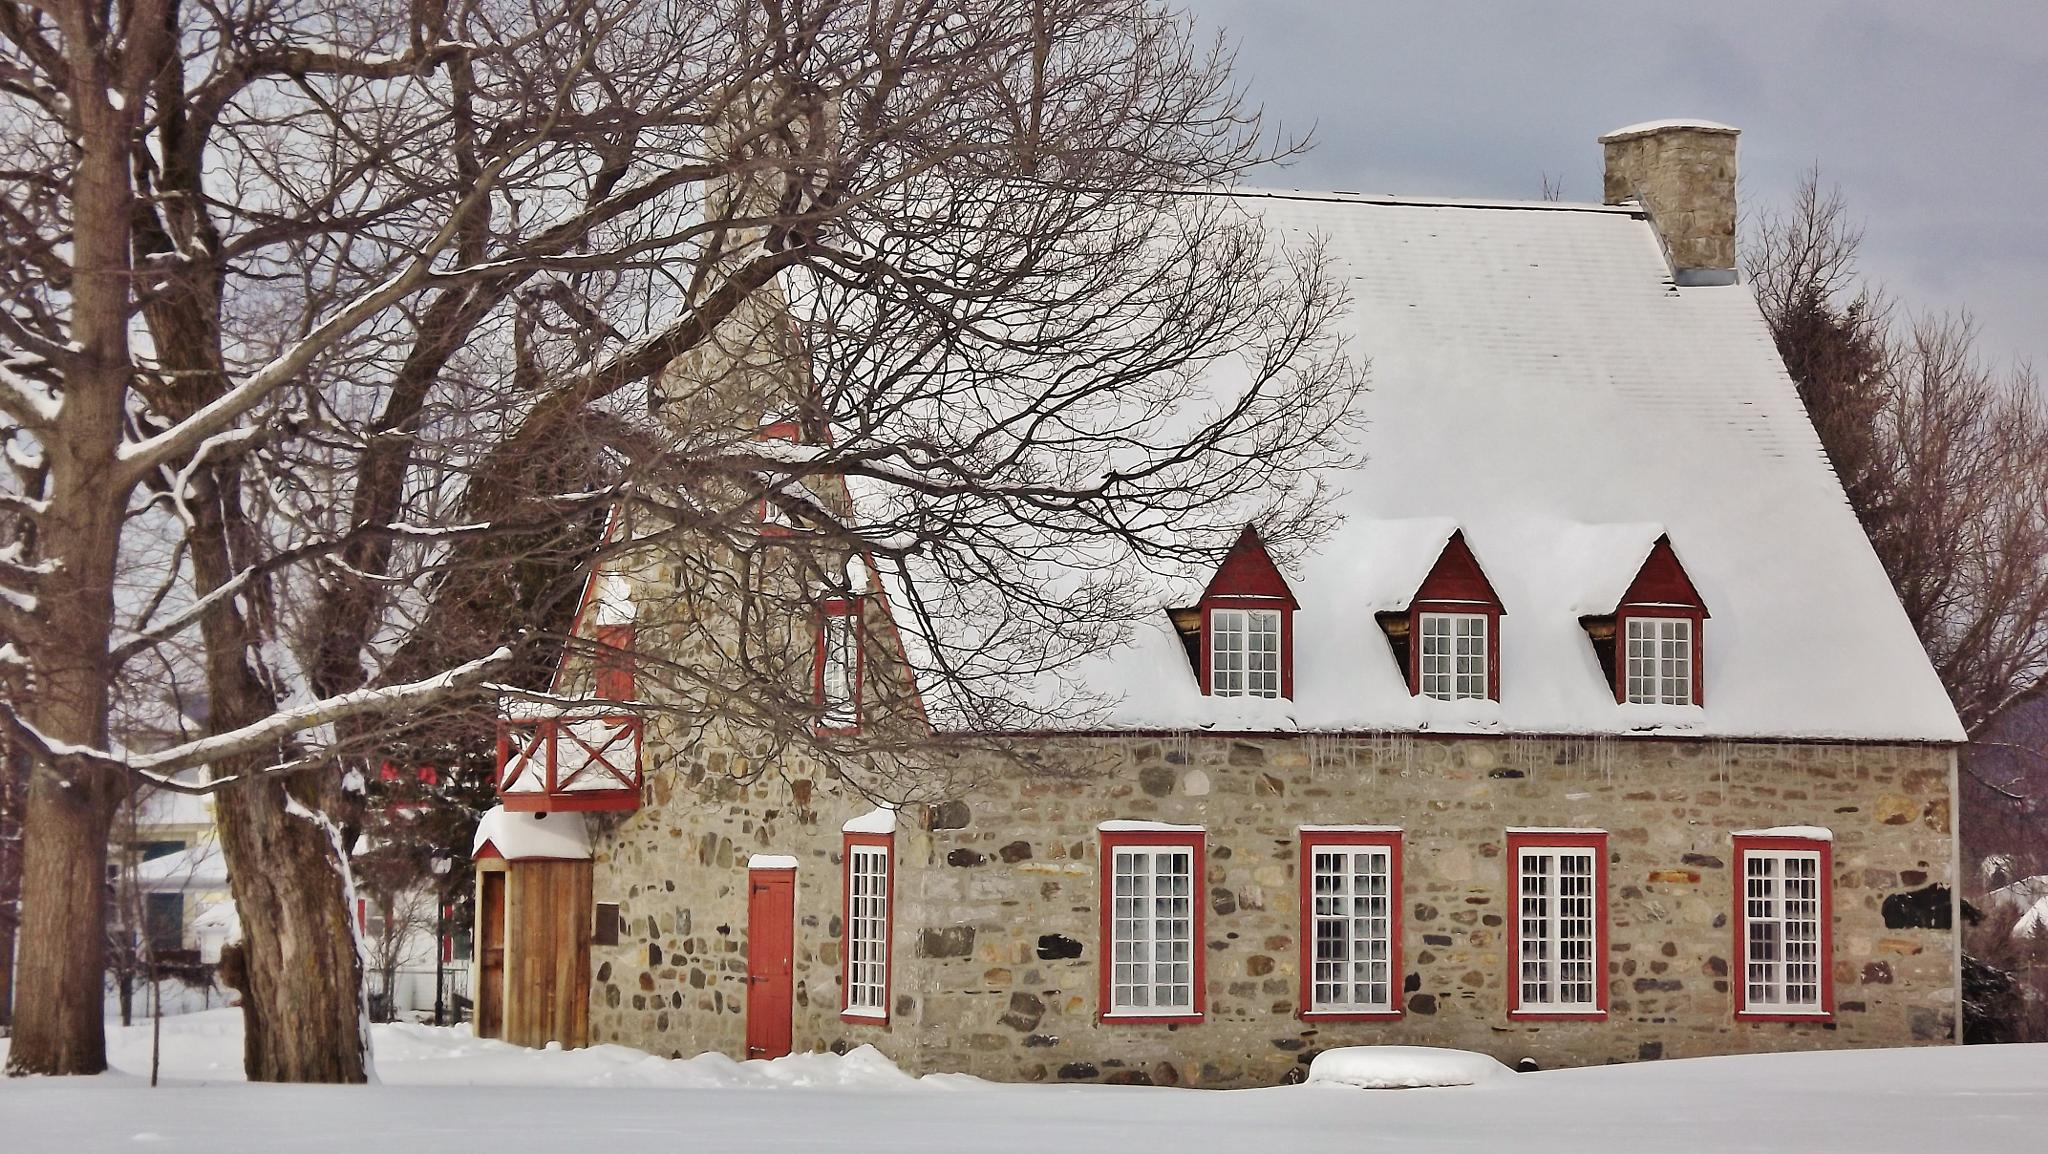 Old house à Deschambault by real.michaud.5036